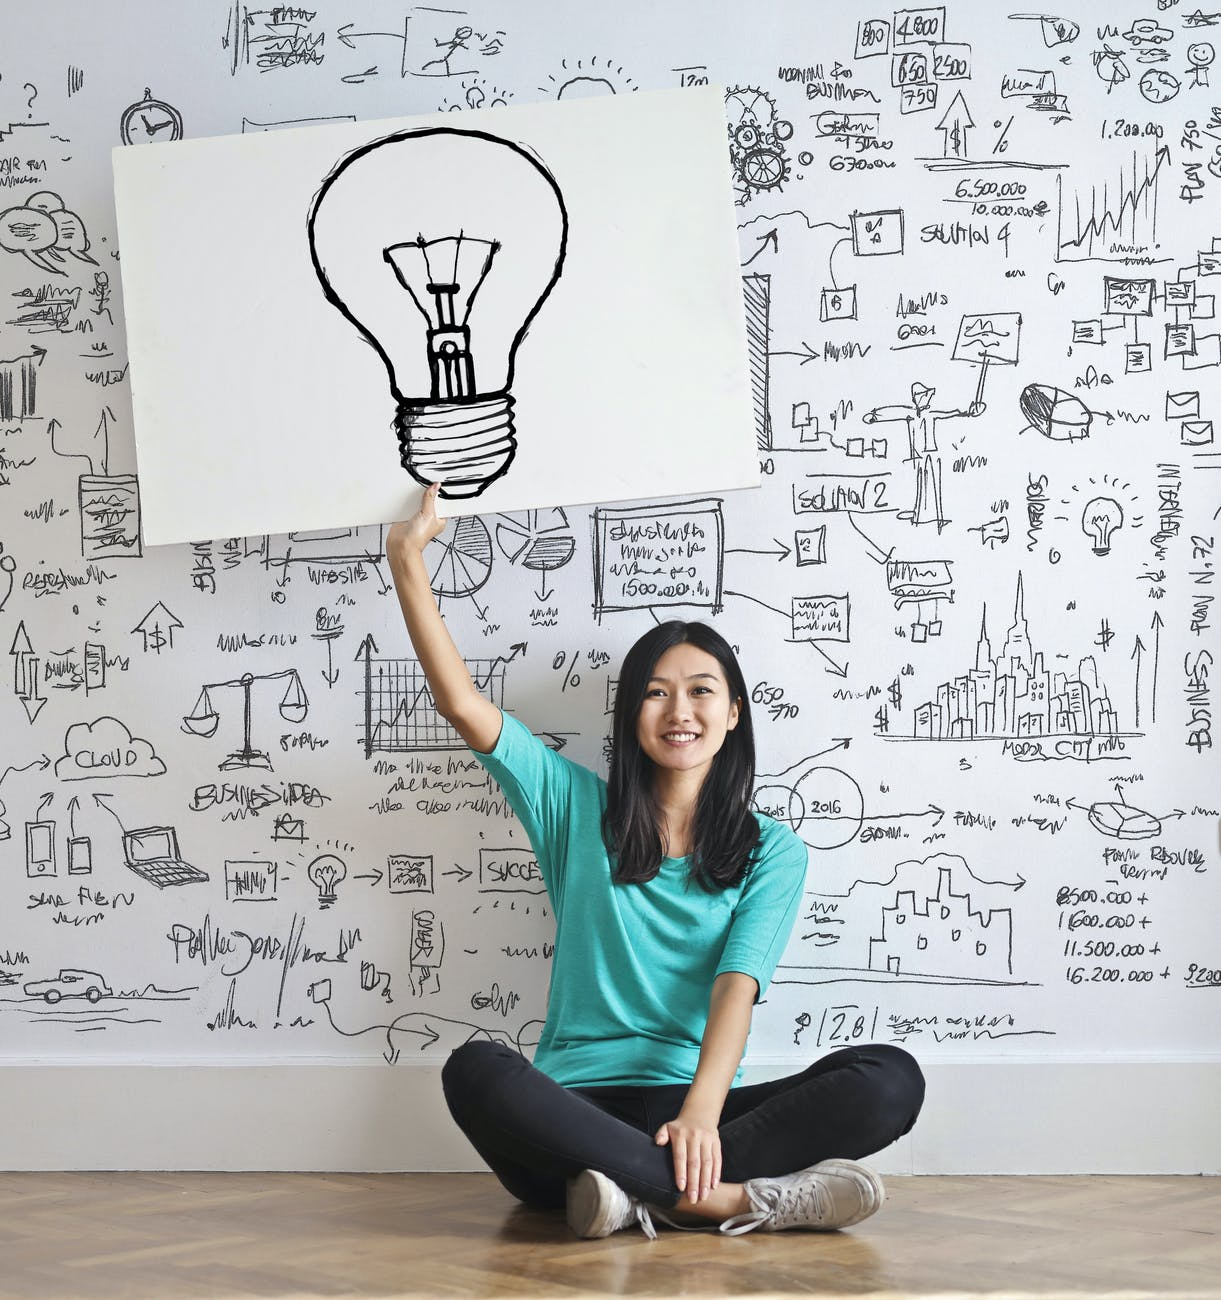 Putting Design Thinking to Use in Your Organization